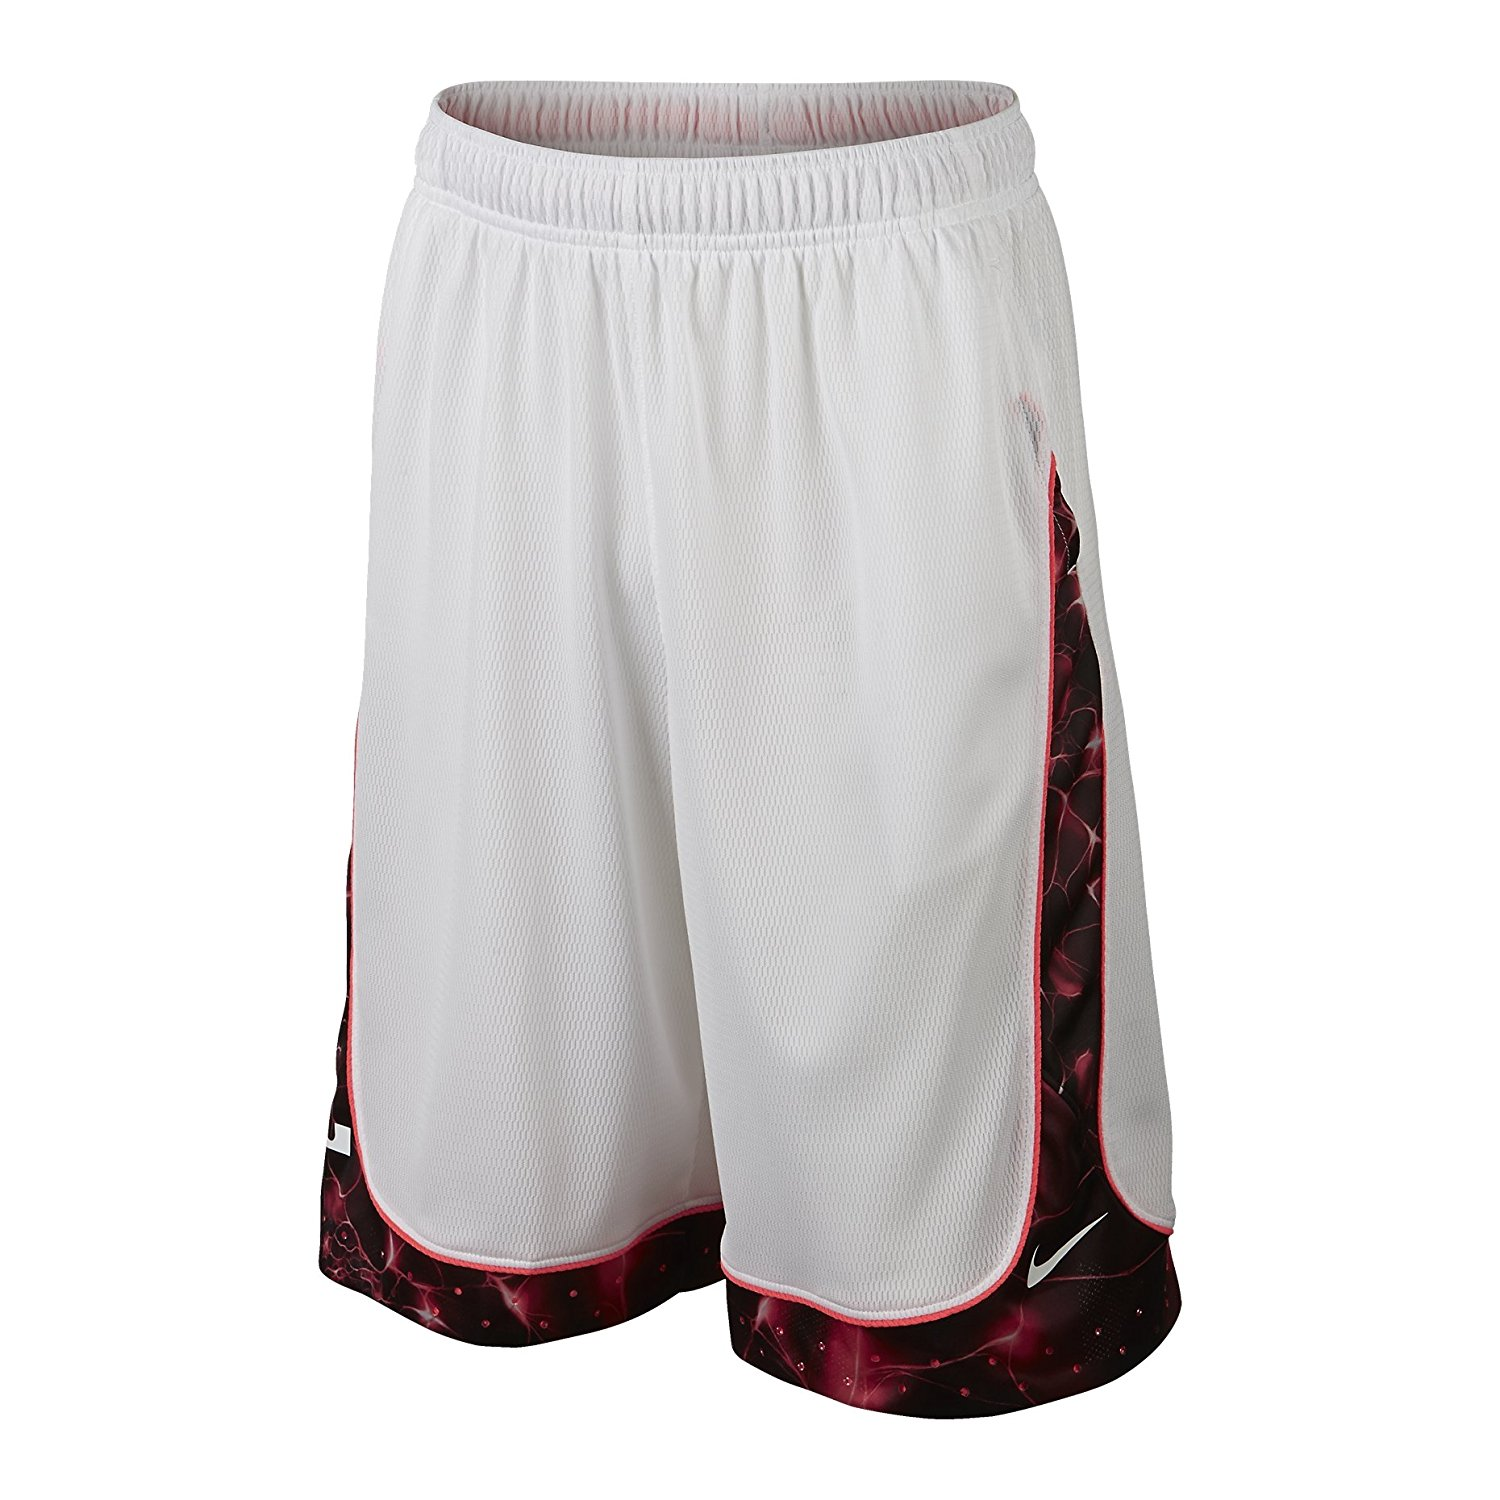 newest collection 66920 4958f Get Quotations · Nike Mens LeBron Helix Elite Basketball Shorts White Hot  Lava Small